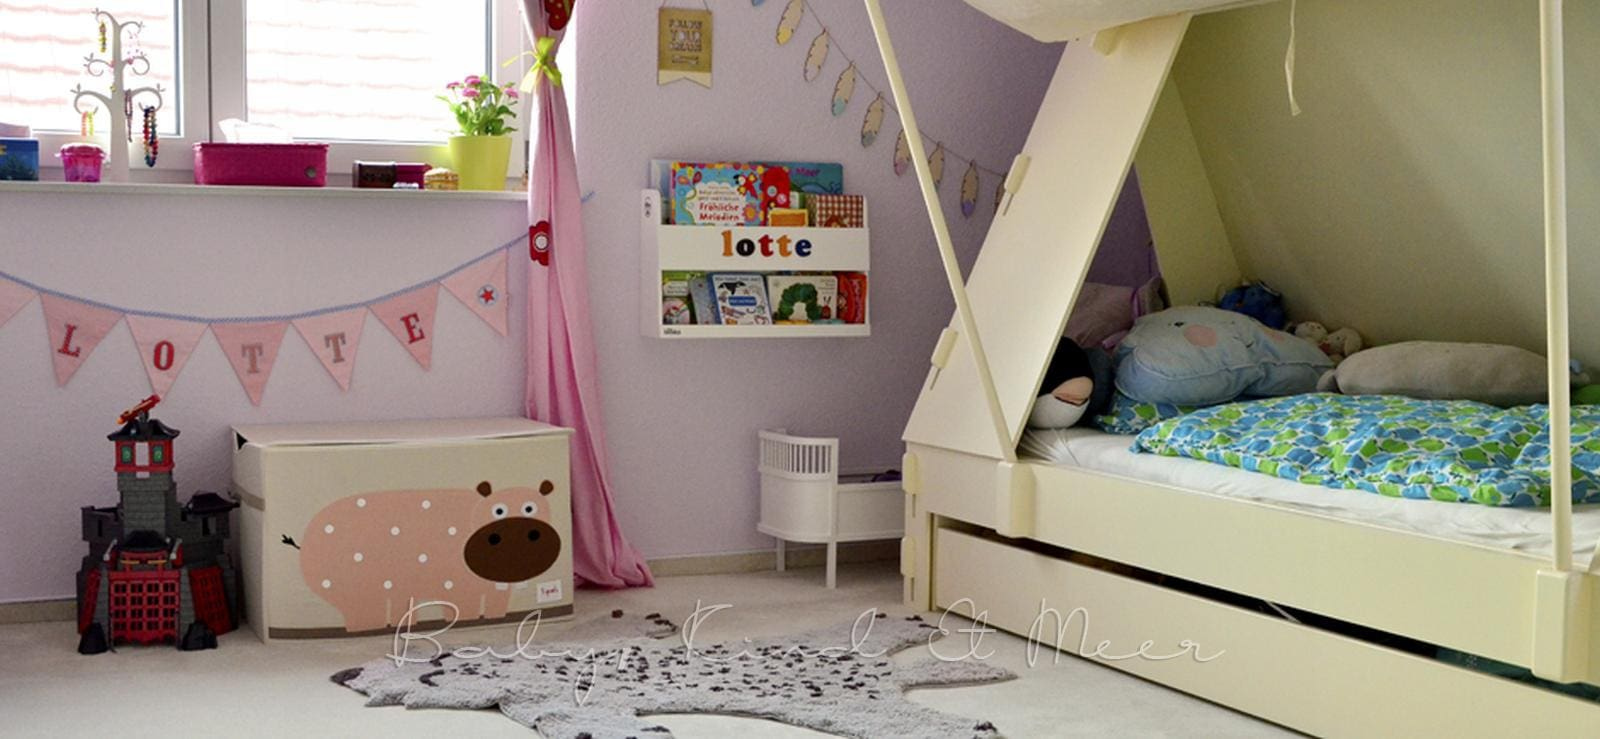 61 Luxurius Kinderzimmer Roomtour Baby Kind Und Meer